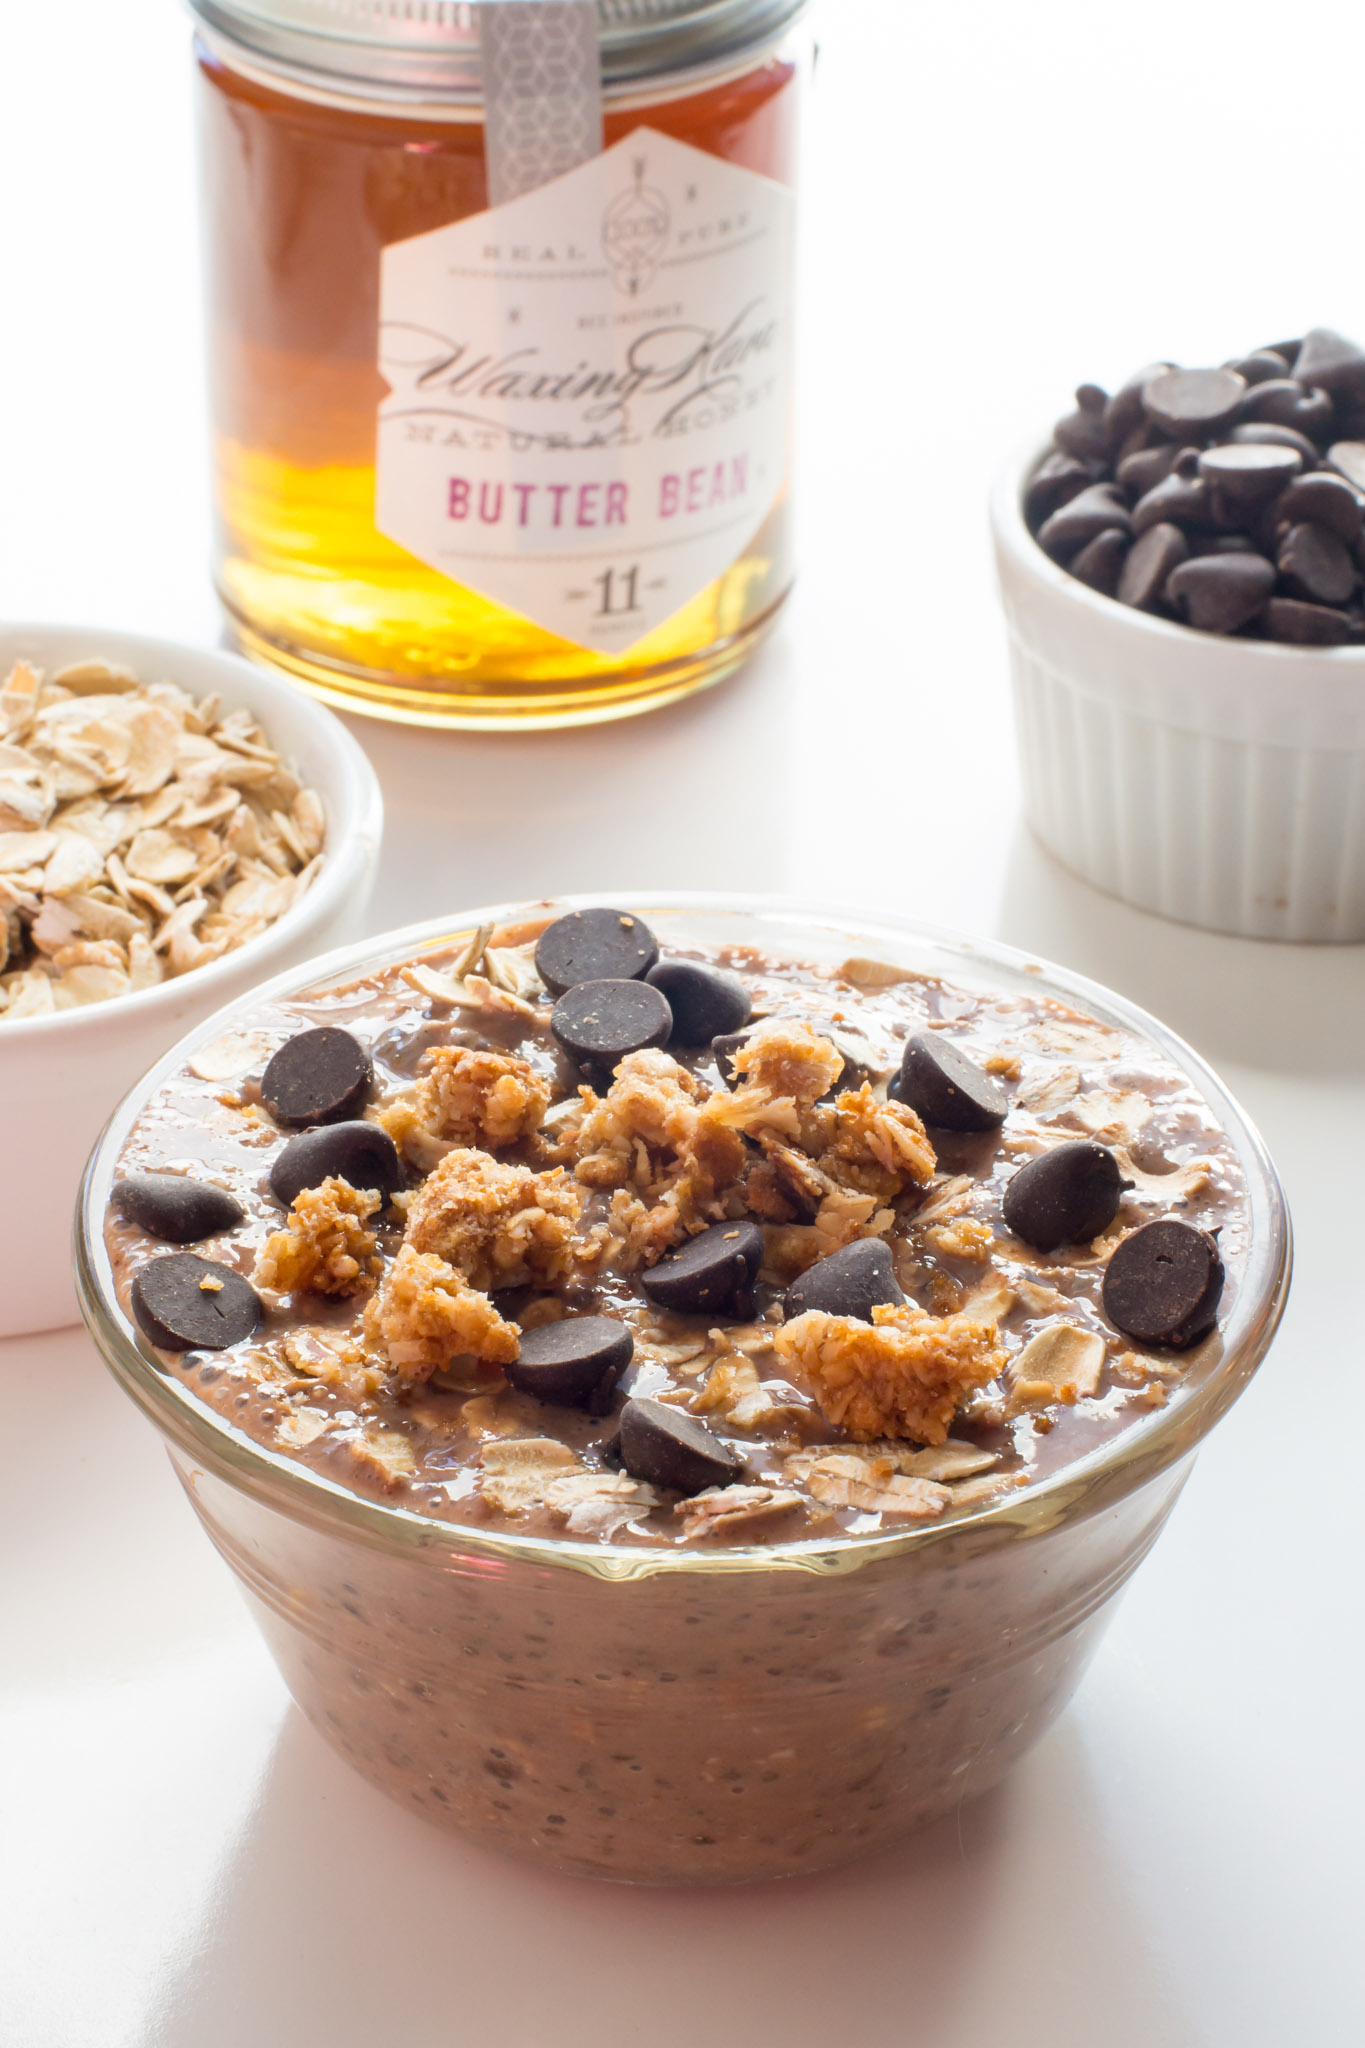 The flavor in this Chocolate Honey Overnight Oats is amazing. You might find yourself looking forward to getting up for another bowl tomorrow!